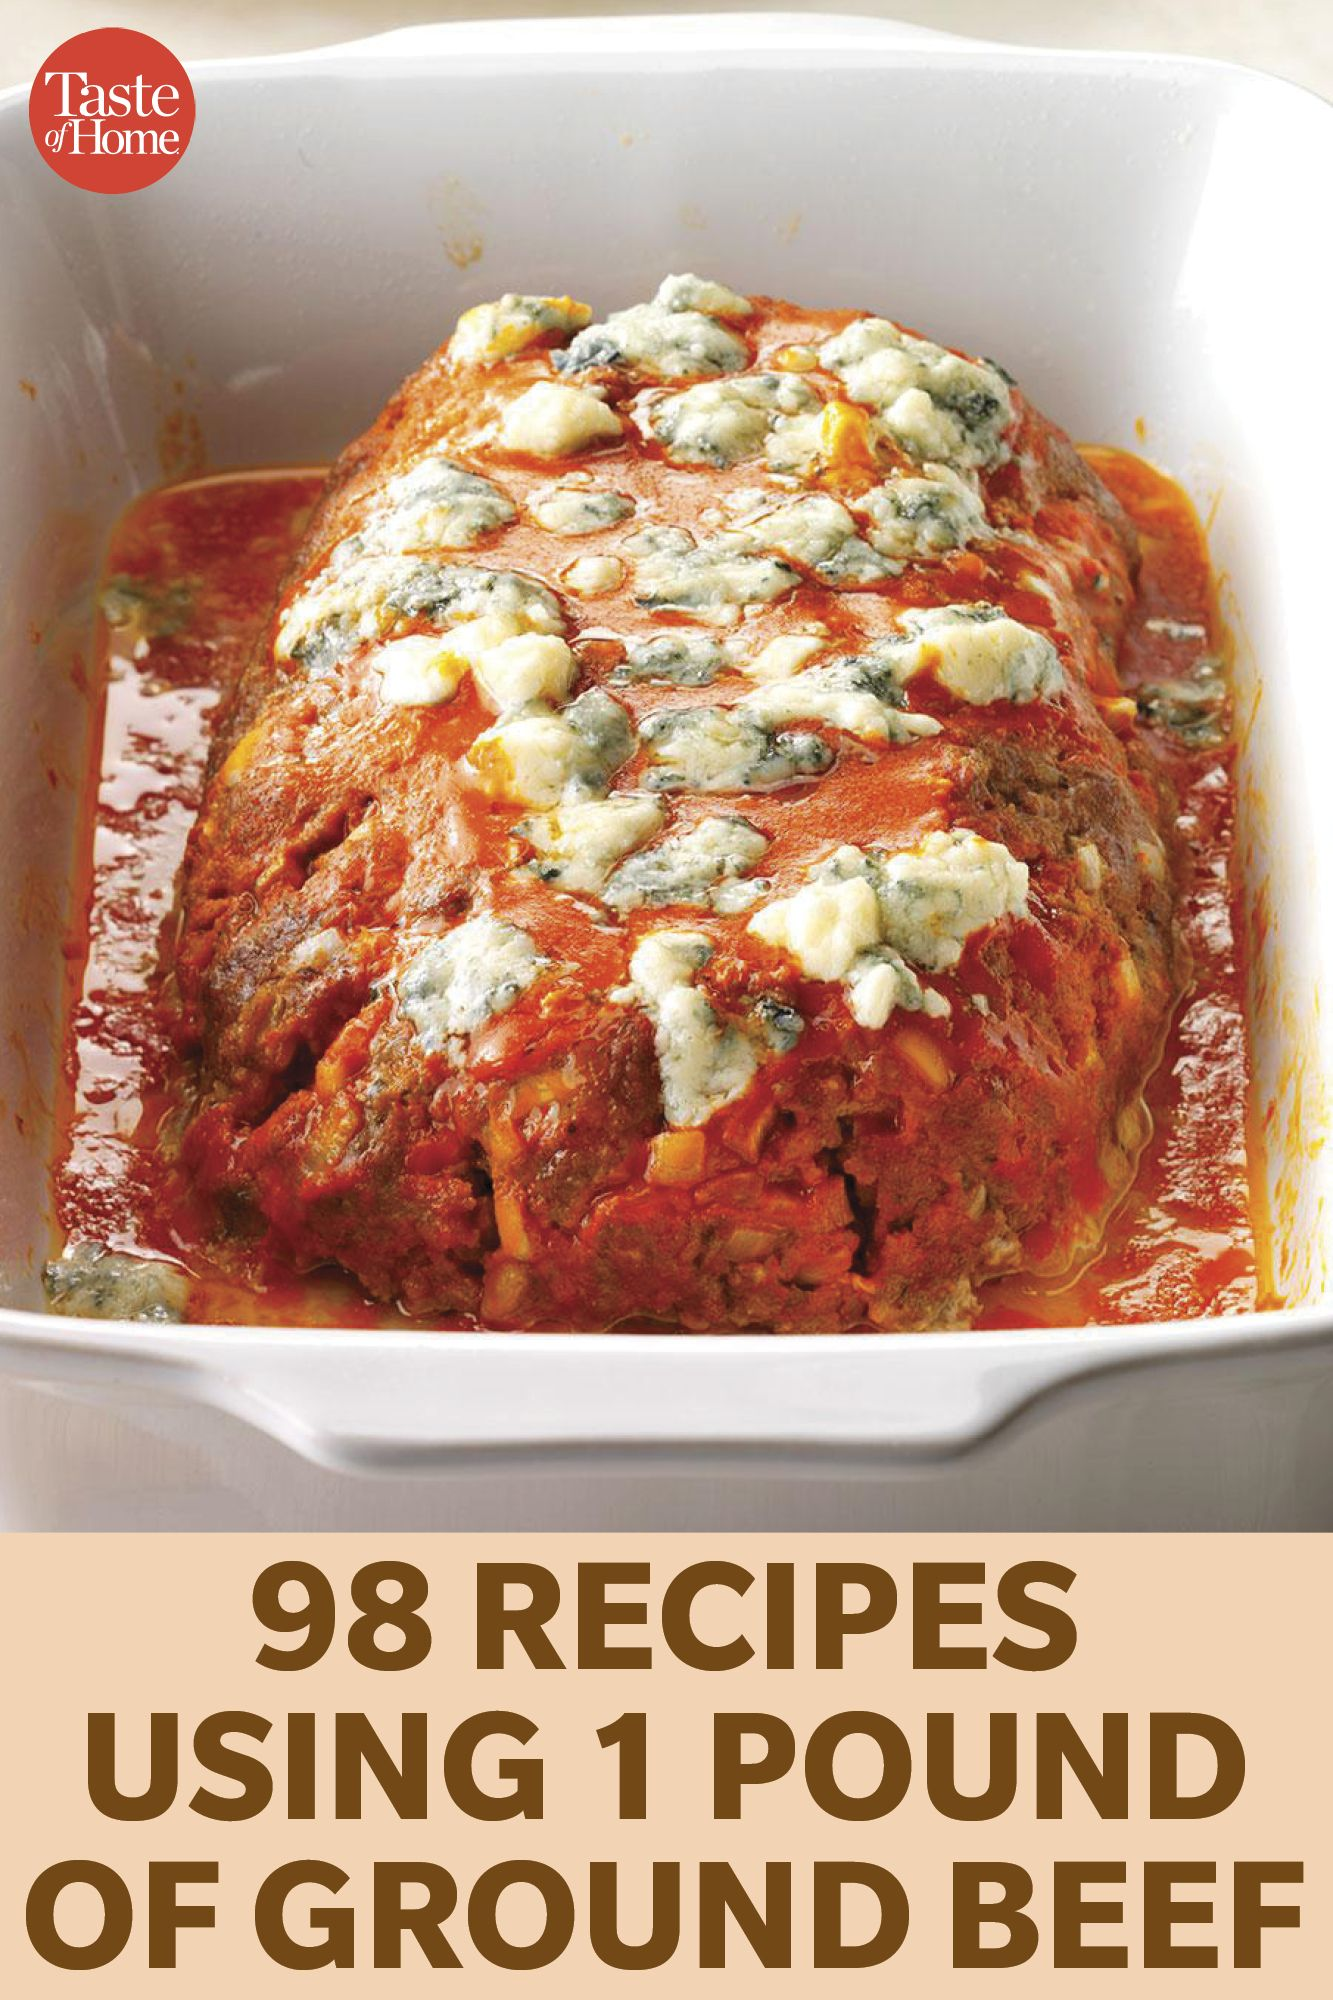 98 Recipes Using 1 Pound Of Ground Beef In 2020 Ground Meat Recipes Ground Beef Recipes Recipes